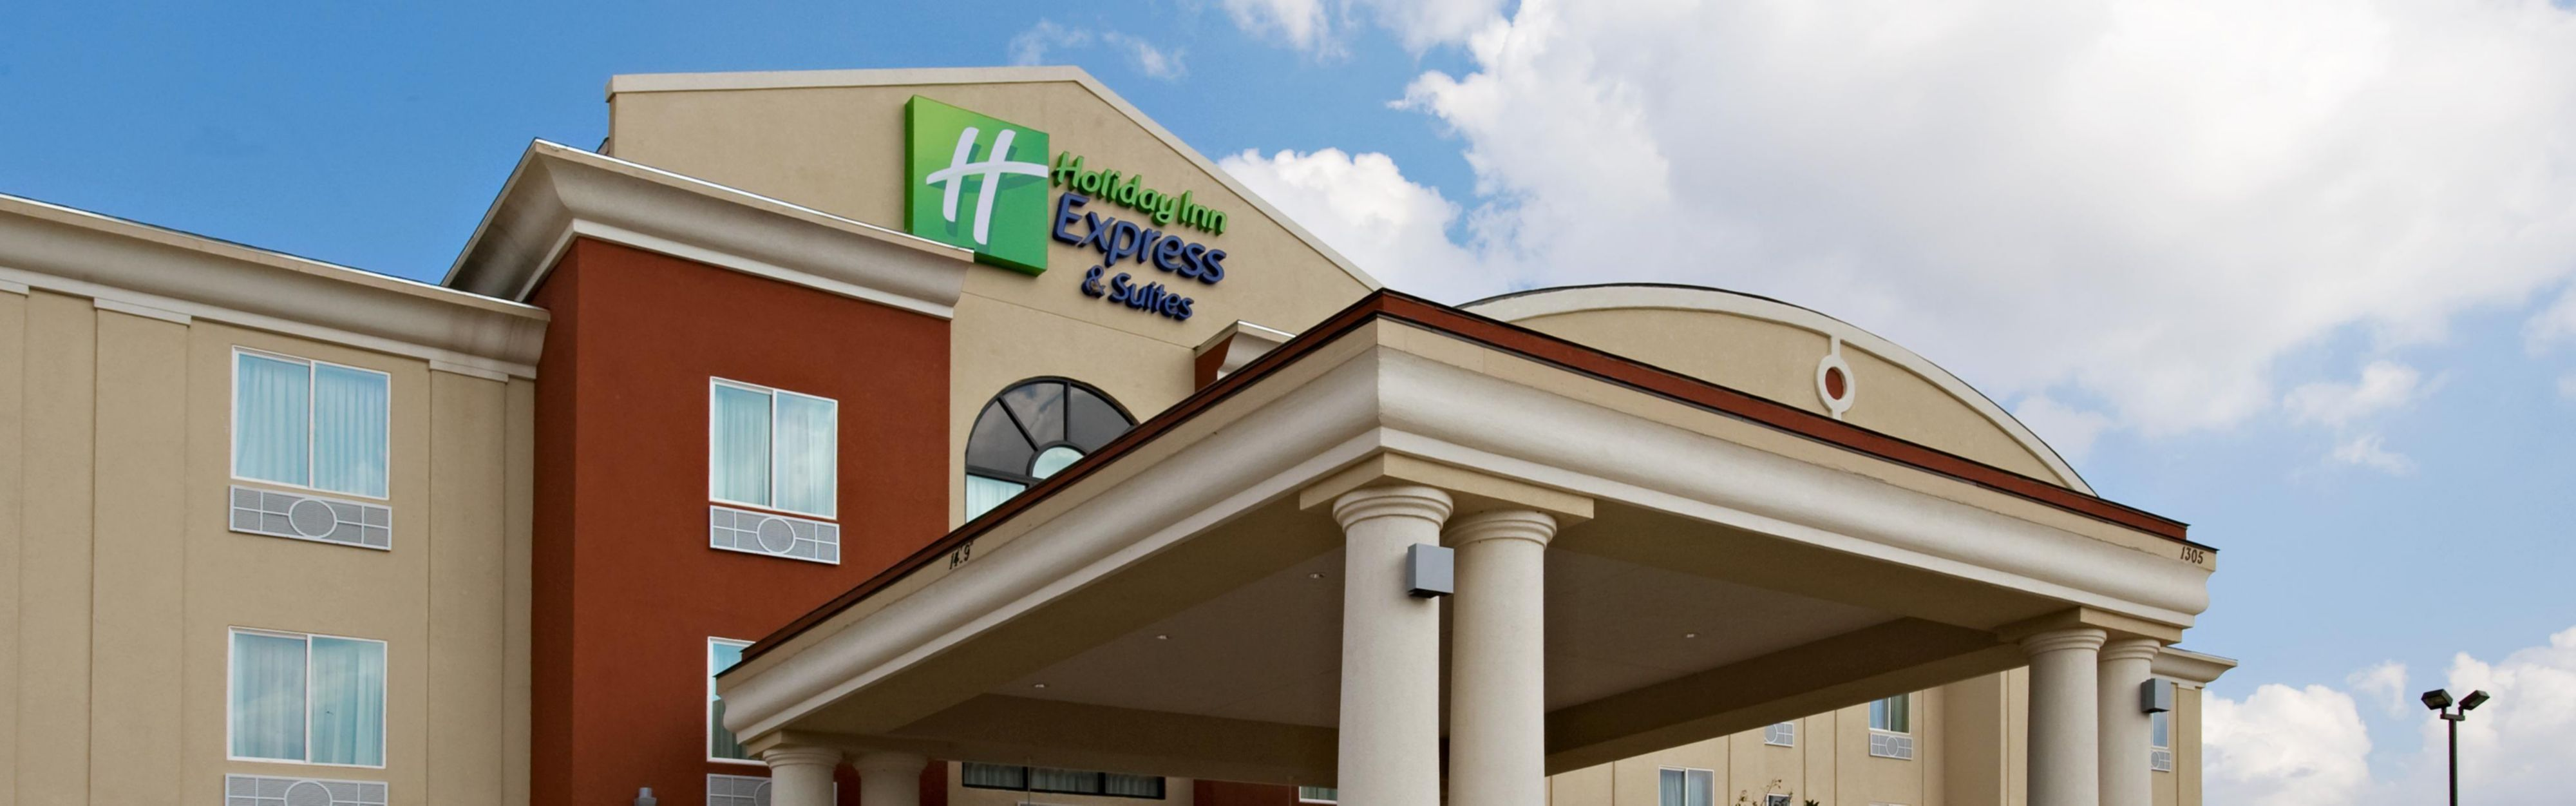 Holiday Inn Express & Suites Snyder image 0